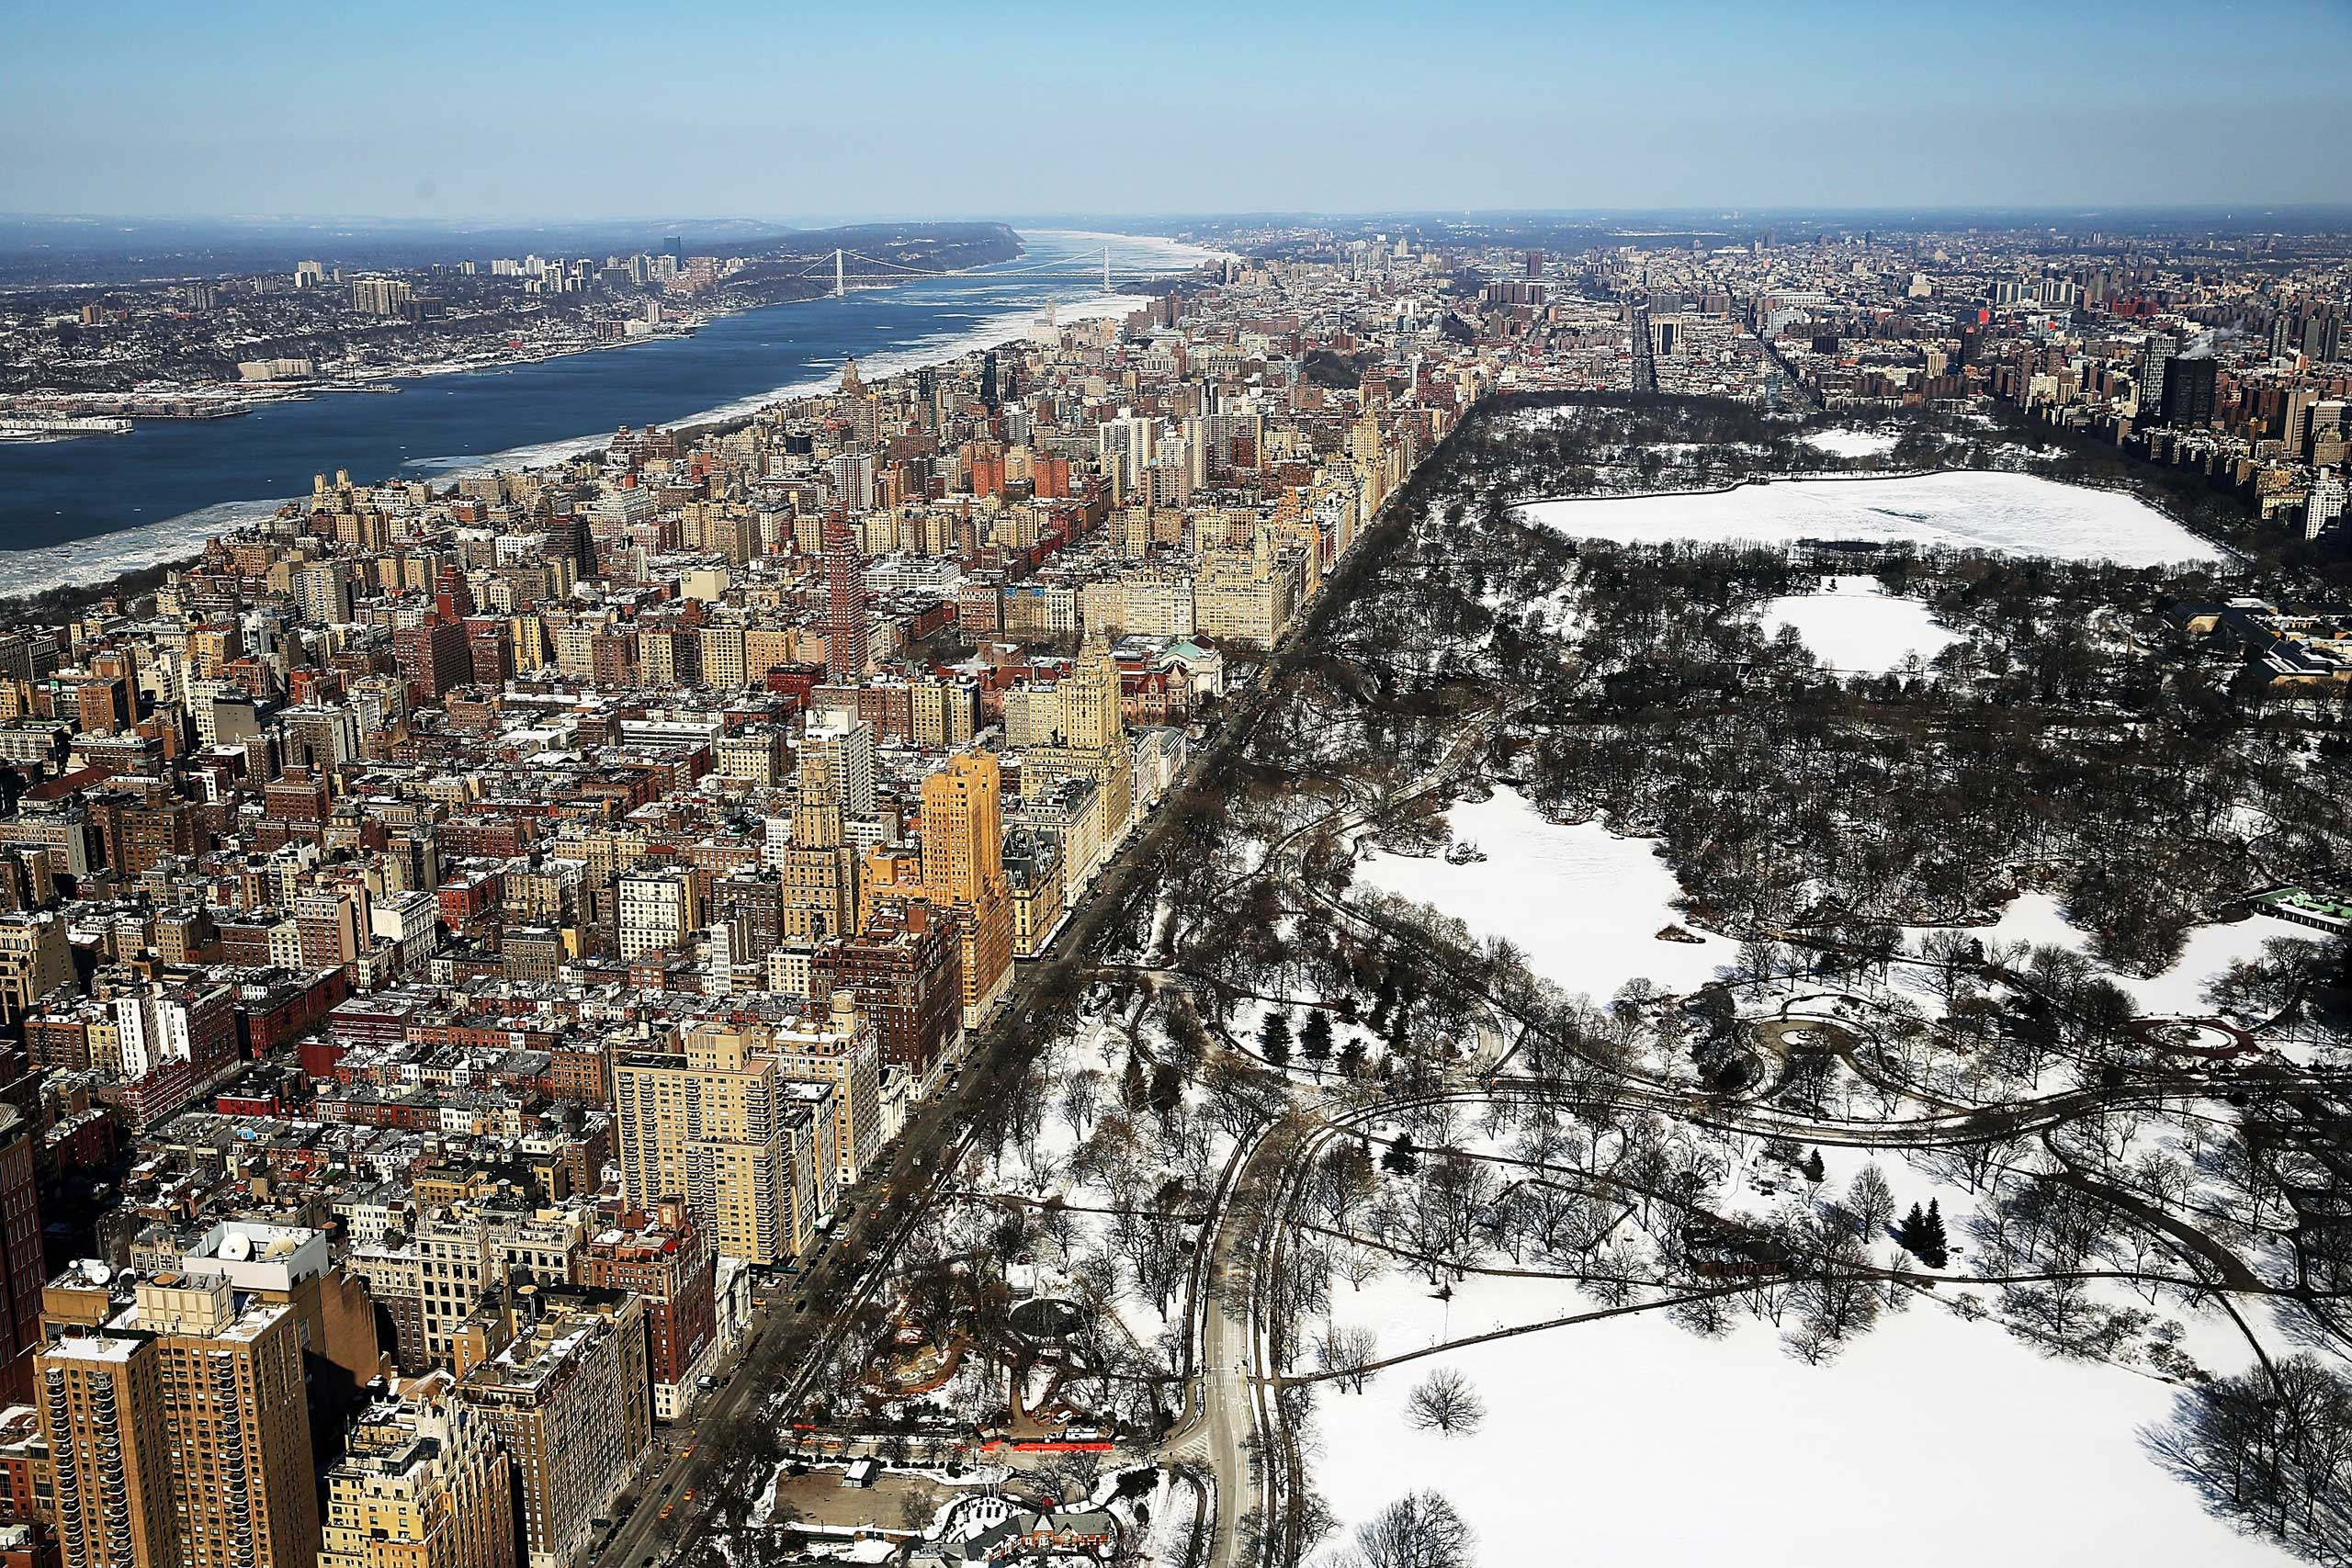 Snow and ice cover Central Park on Feb. 20, 2015 in New York City.